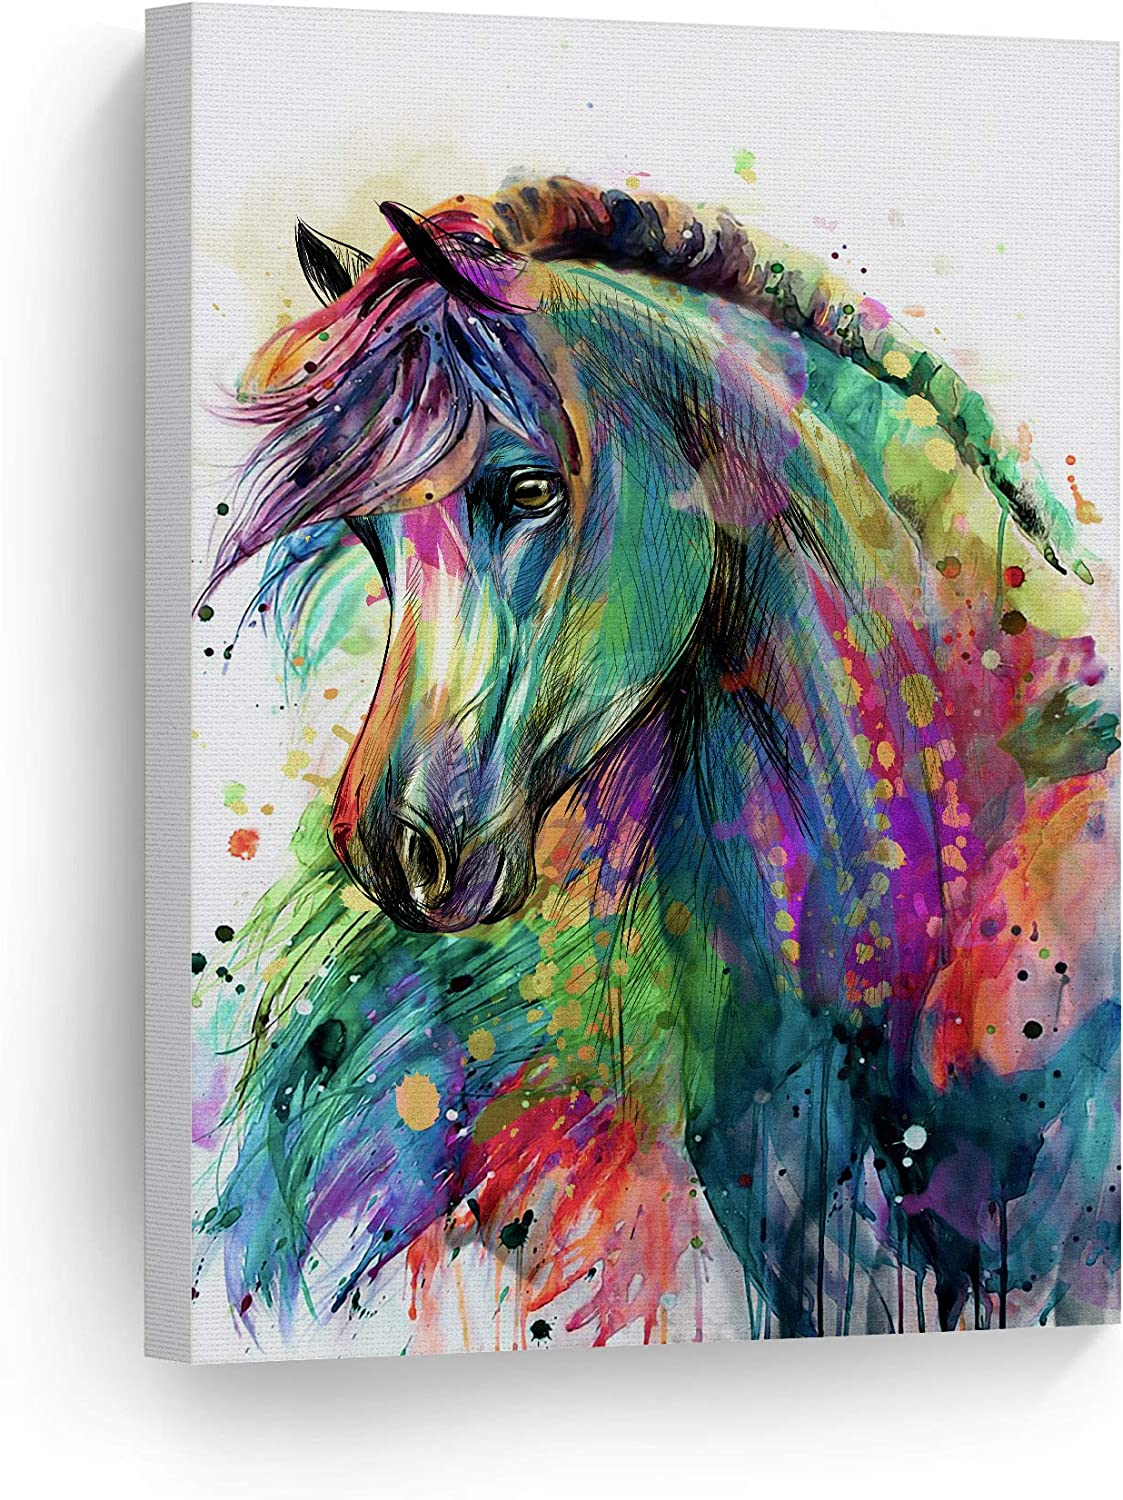 Amazon Com Smile Art Design Horse Watercolor Painting Colorful Rainbow Portrait Canvas Print Decorative Art Wall Décor Artwork Wrapped Wood Stretcher Bars Ready To Hang 100 Handmade In The Usa 12x8